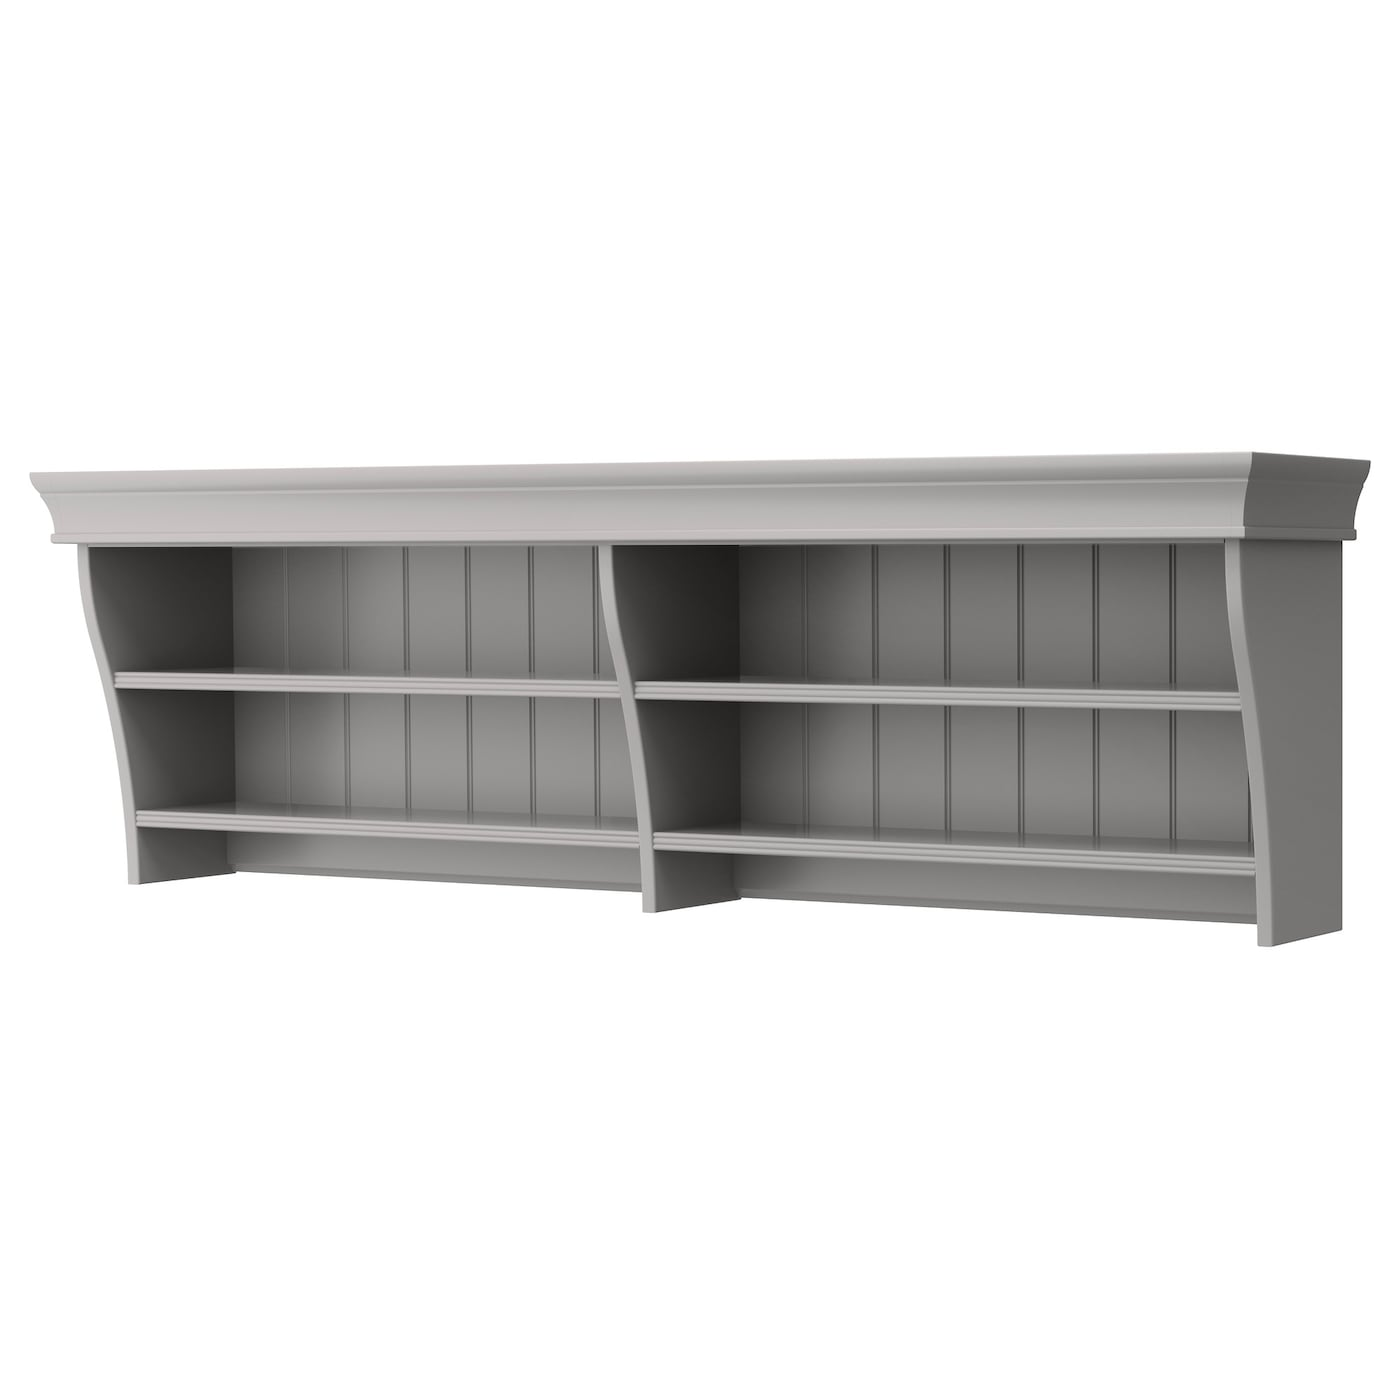 liatorp wall bridging shelf grey 152x47 cm ikea. Black Bedroom Furniture Sets. Home Design Ideas